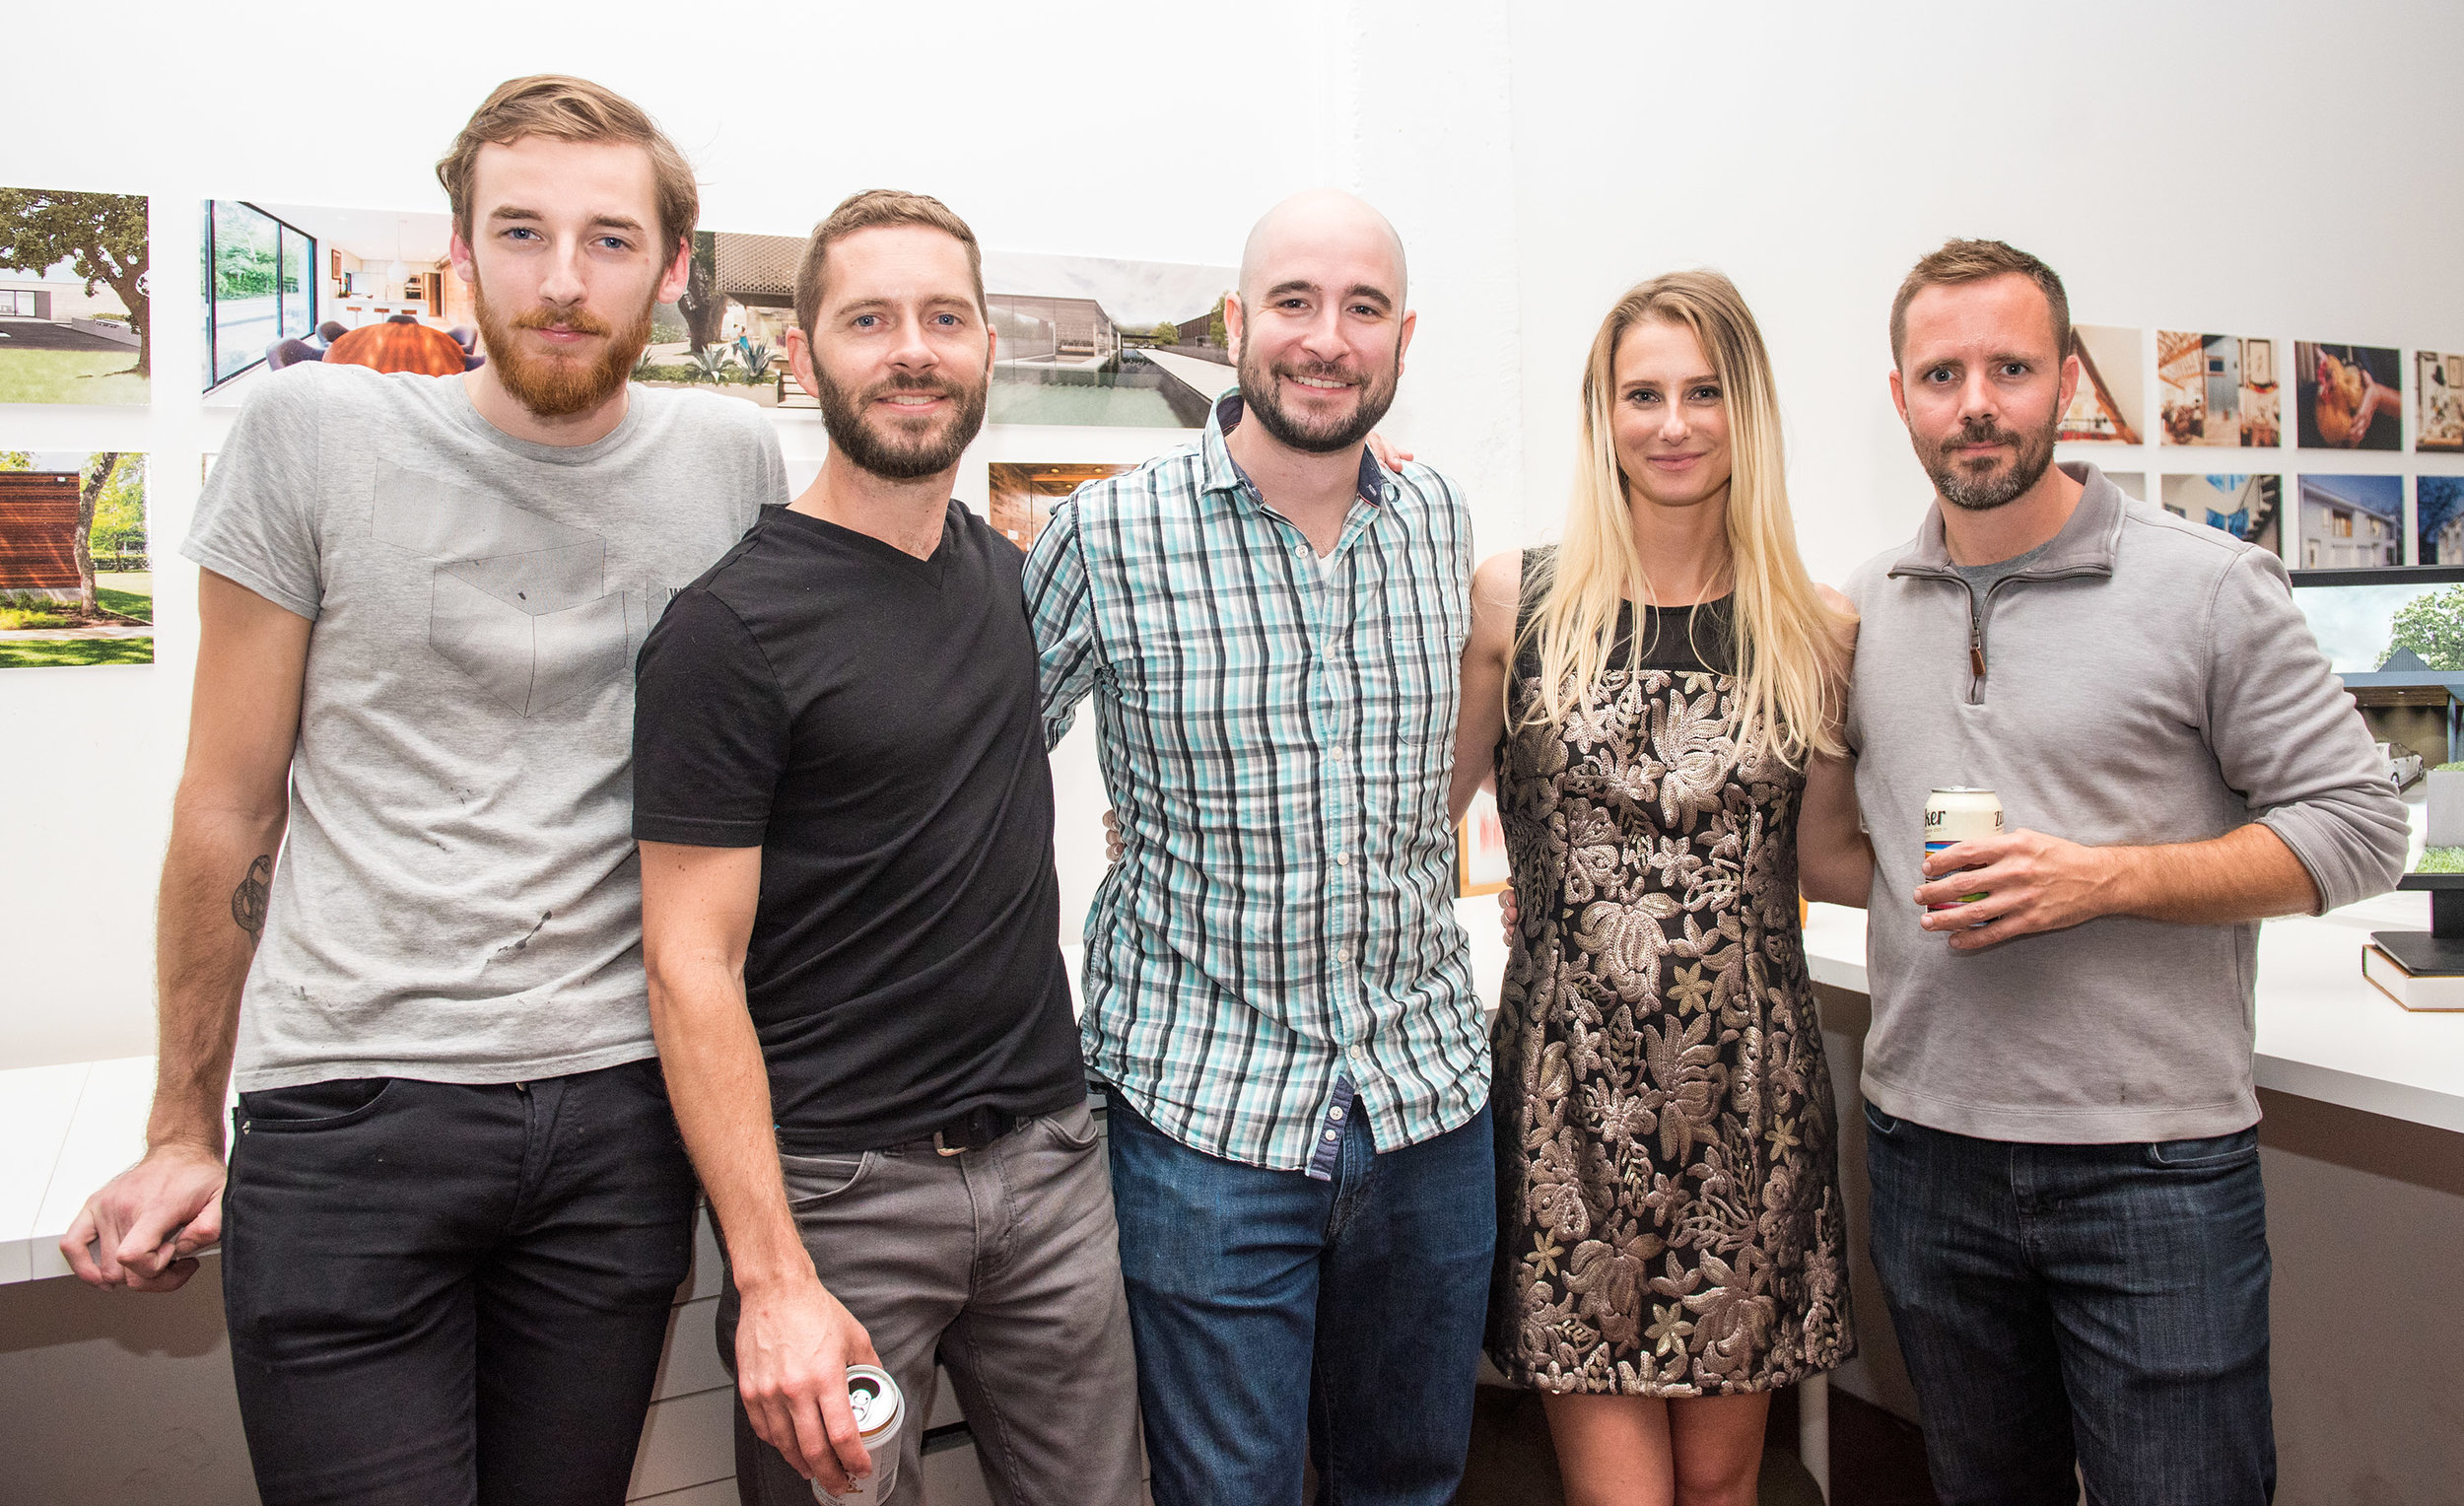 dbh-EASTopeningparty_EastSideCollective-111116-40.jpg